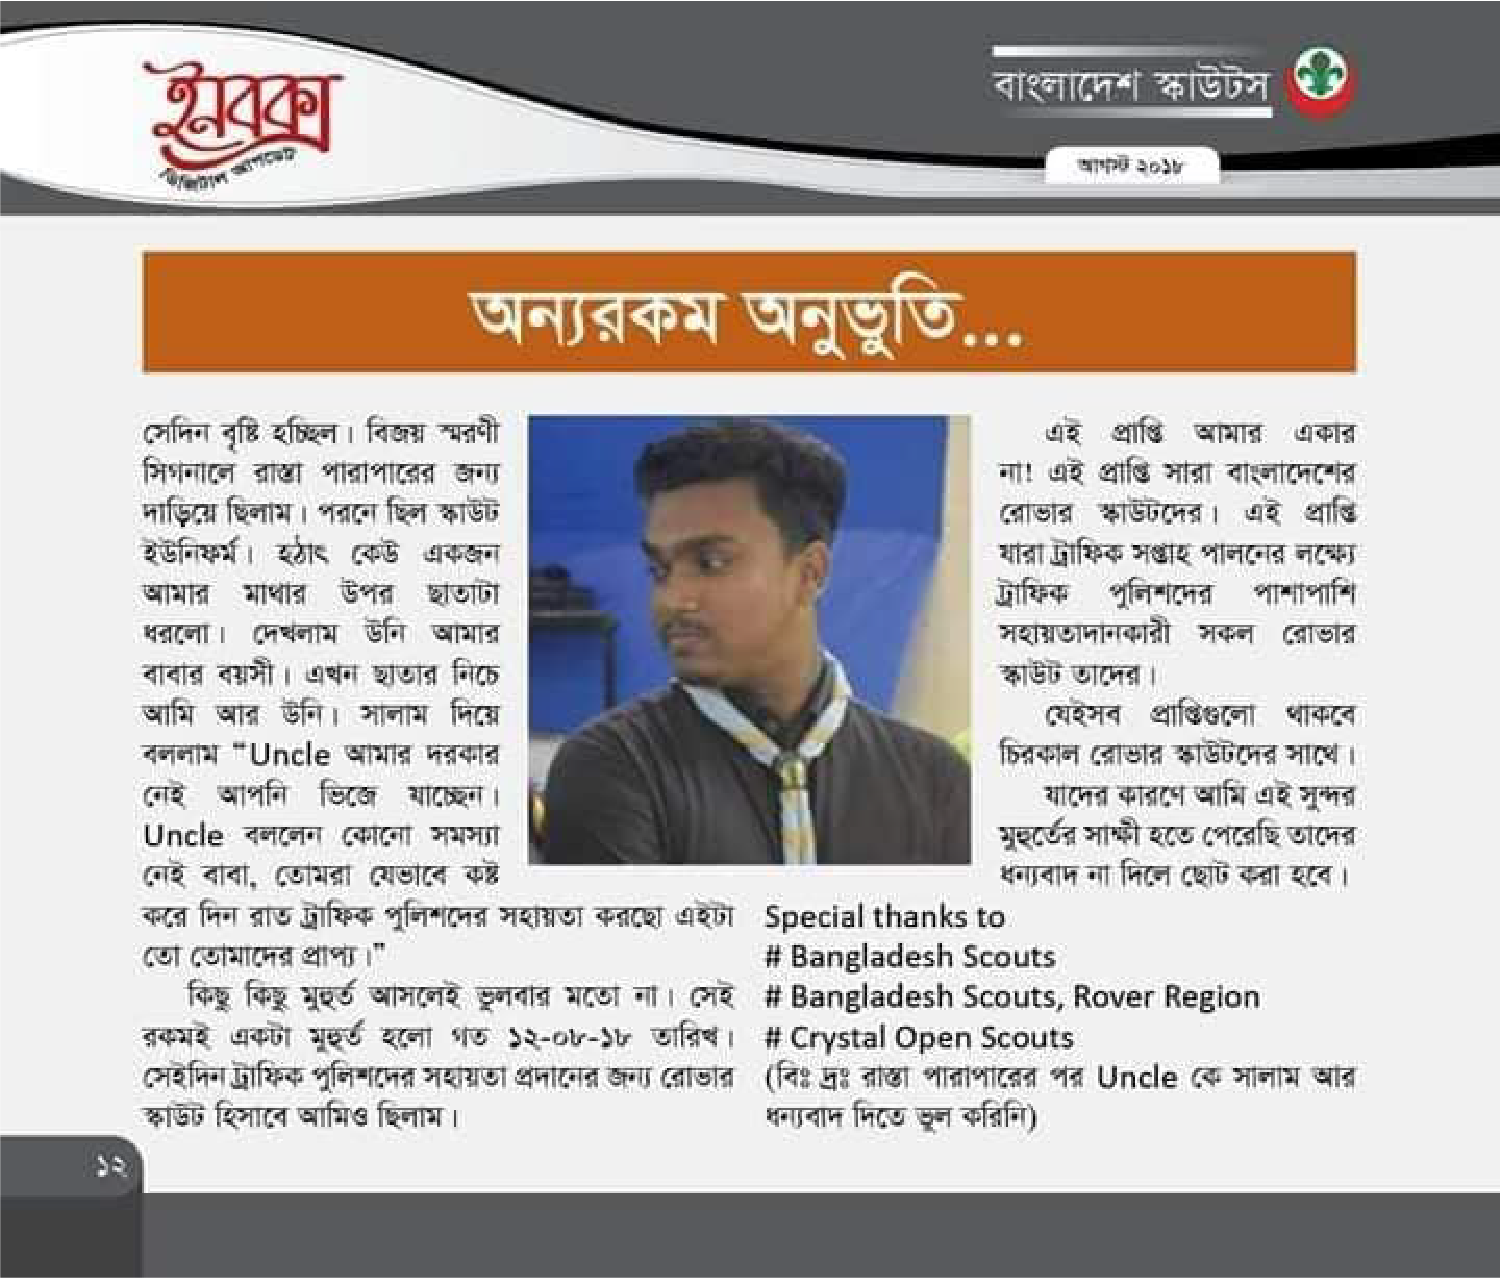 #Crystal_open_scouts #Bangladesh_scouts #Bangladesh_scouts_rover_region